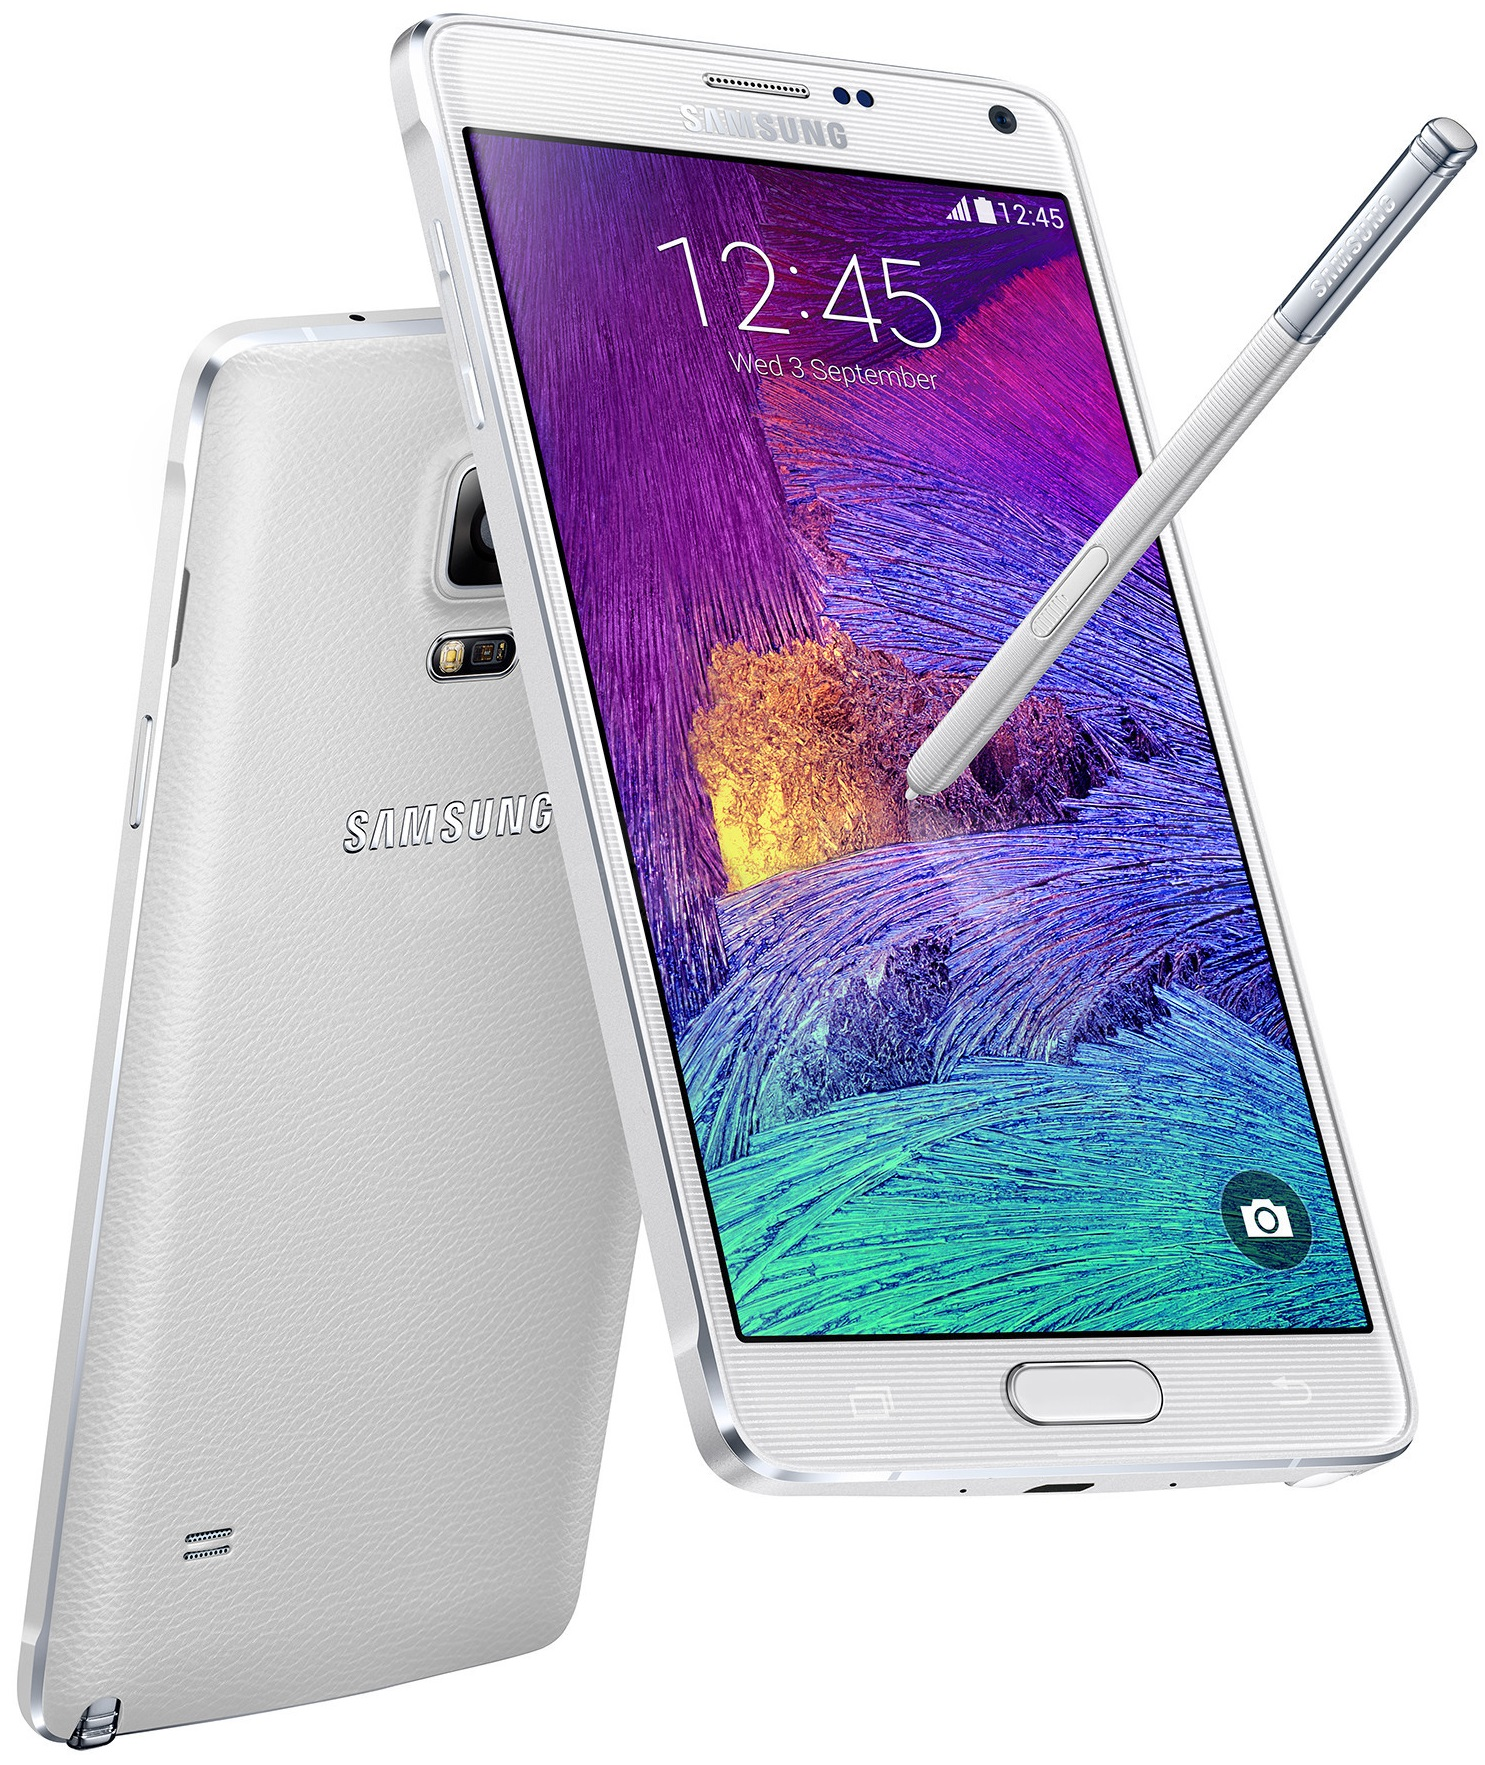 Samsung Galaxy Note 4 Oficial (2)